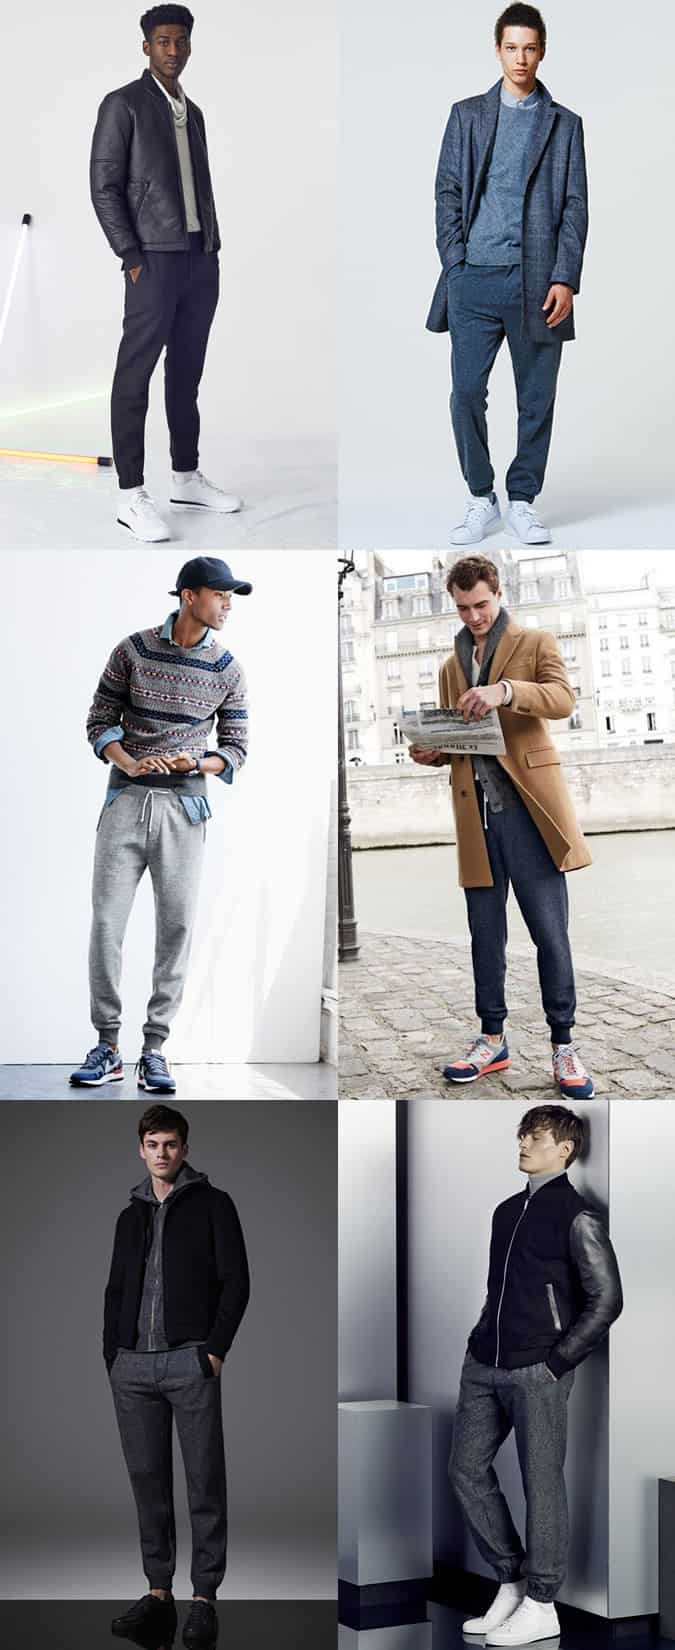 Men's Slimline/Smart Joggers Outfit Inspiration Lookbook